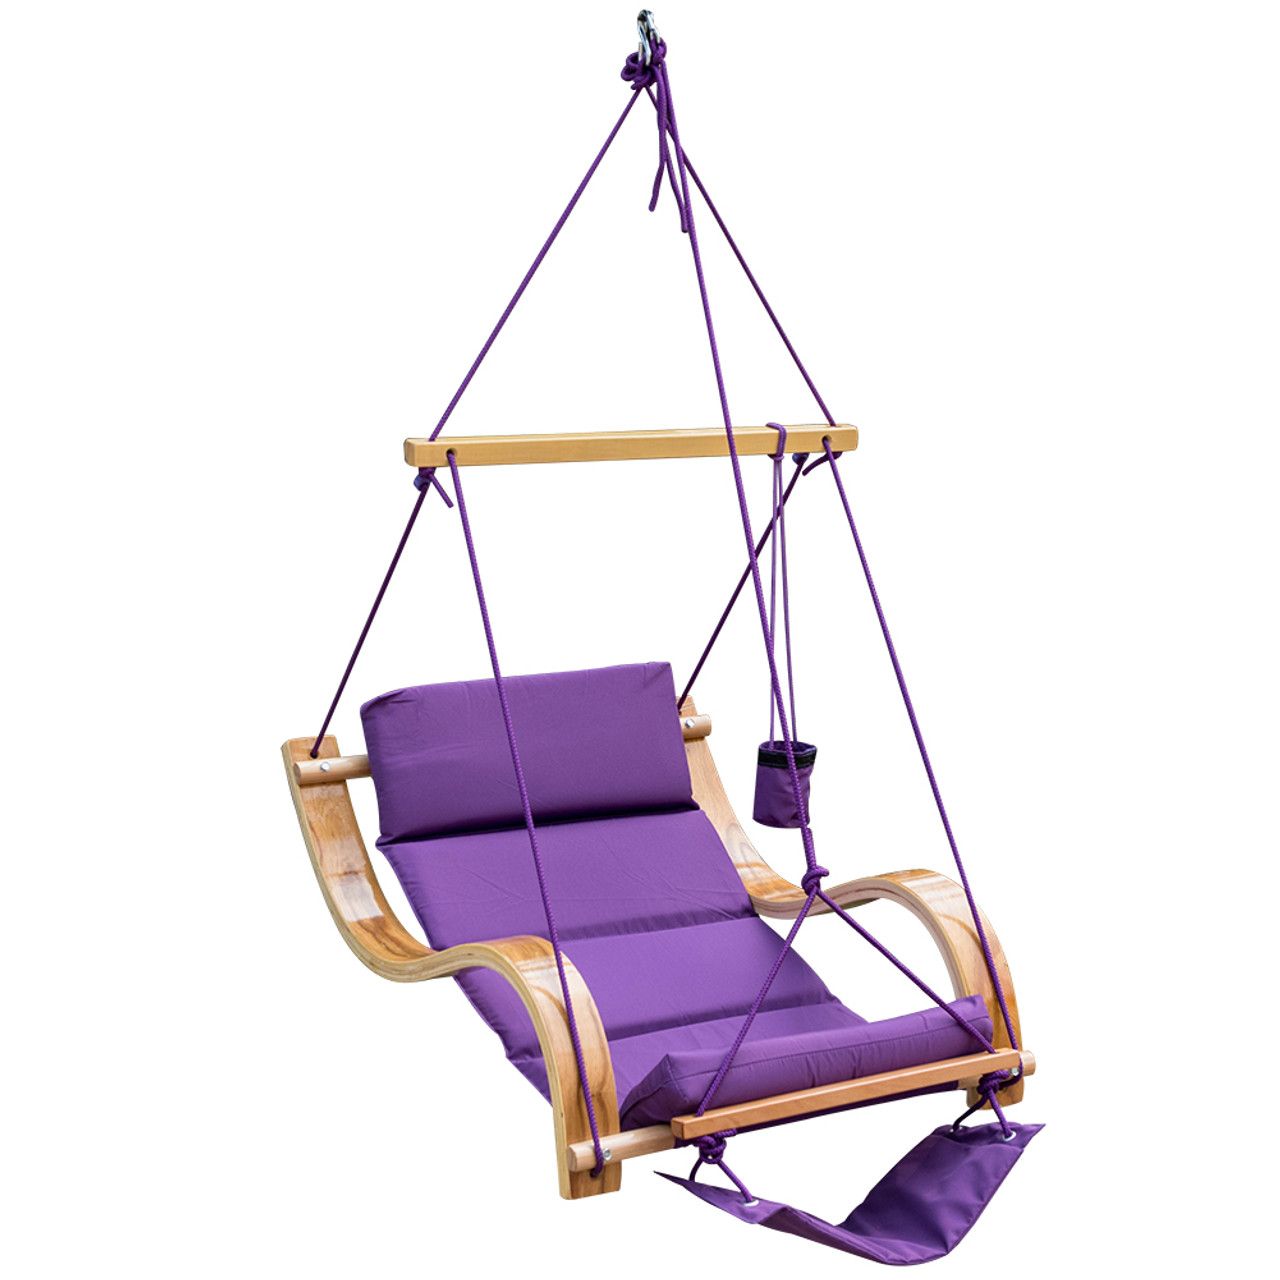 Lazy Daze Hammocks Patio Garden Outdoor Deluxe Hanging Hammock Lounger Chair With Cup Holder Footrest Hardware Capacity 350 Lbs Purple